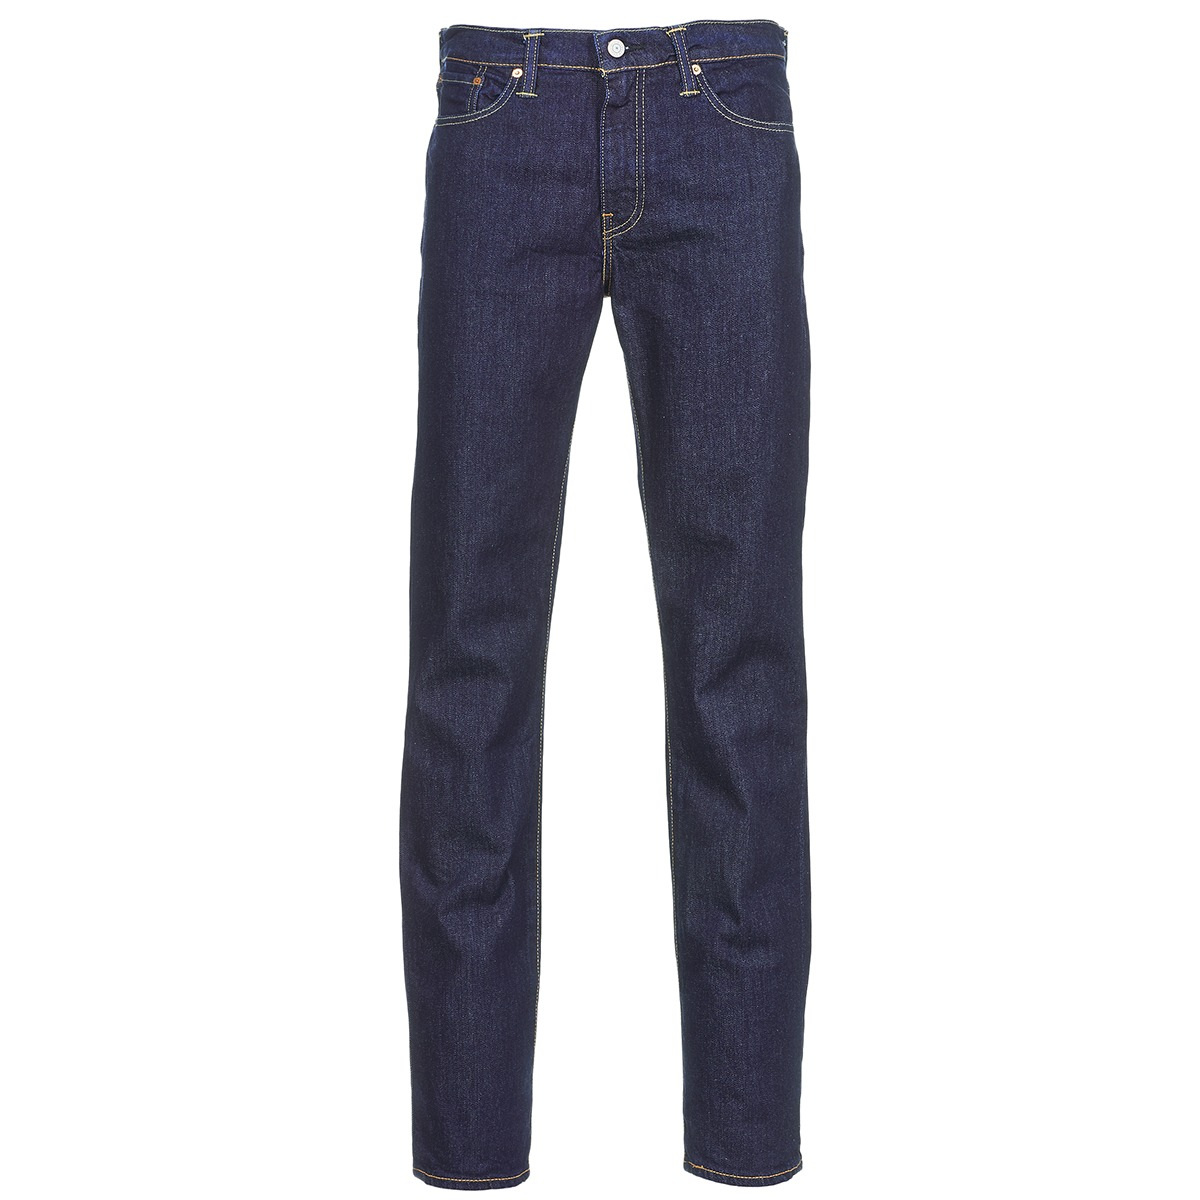 Levi's 511 SLIM FIT Rock Cod P4770